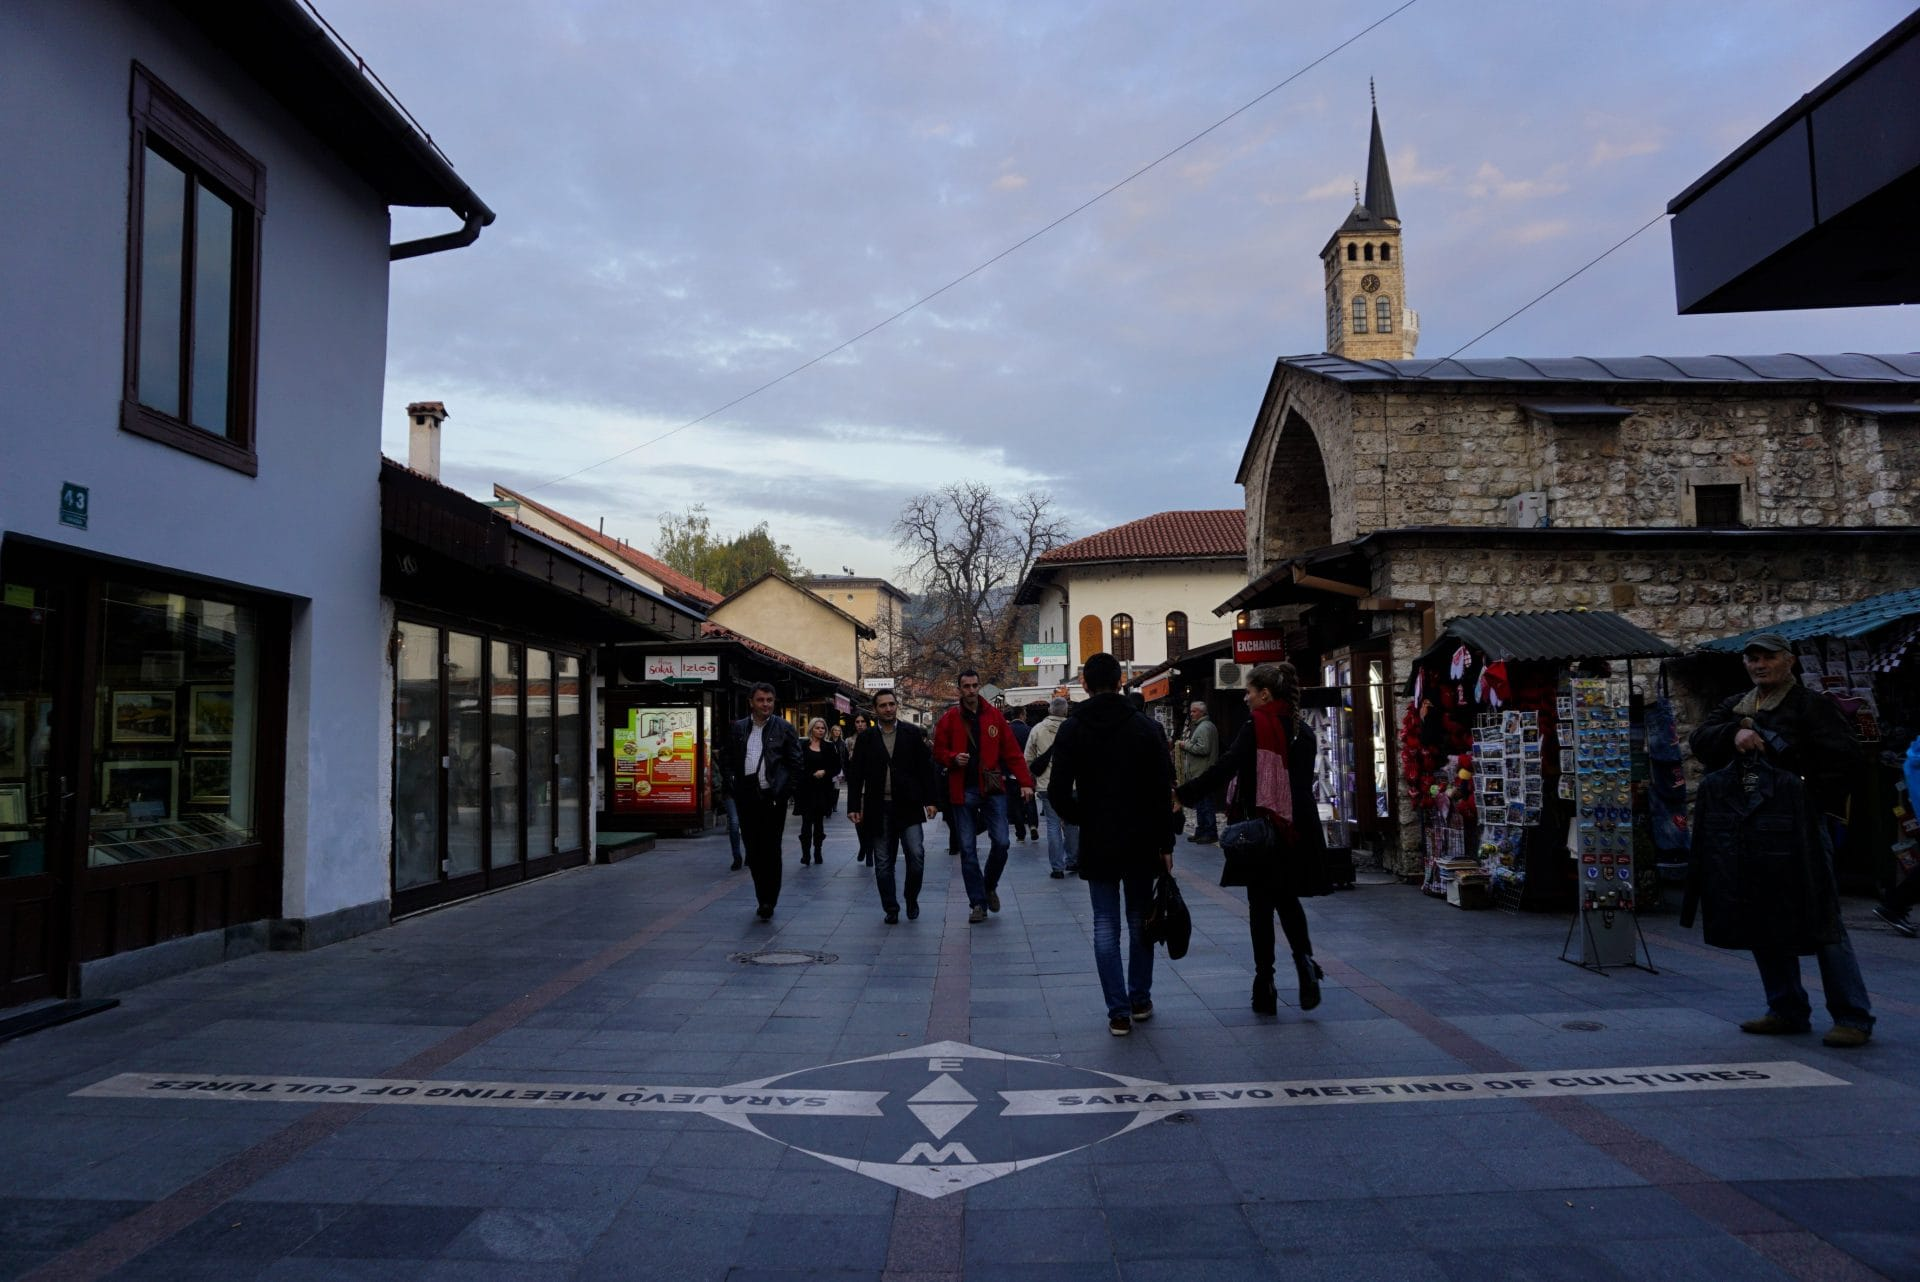 Sarajevo, meeting of cultures, East, Bosnia and Herzegovina - Experiencing the Globe